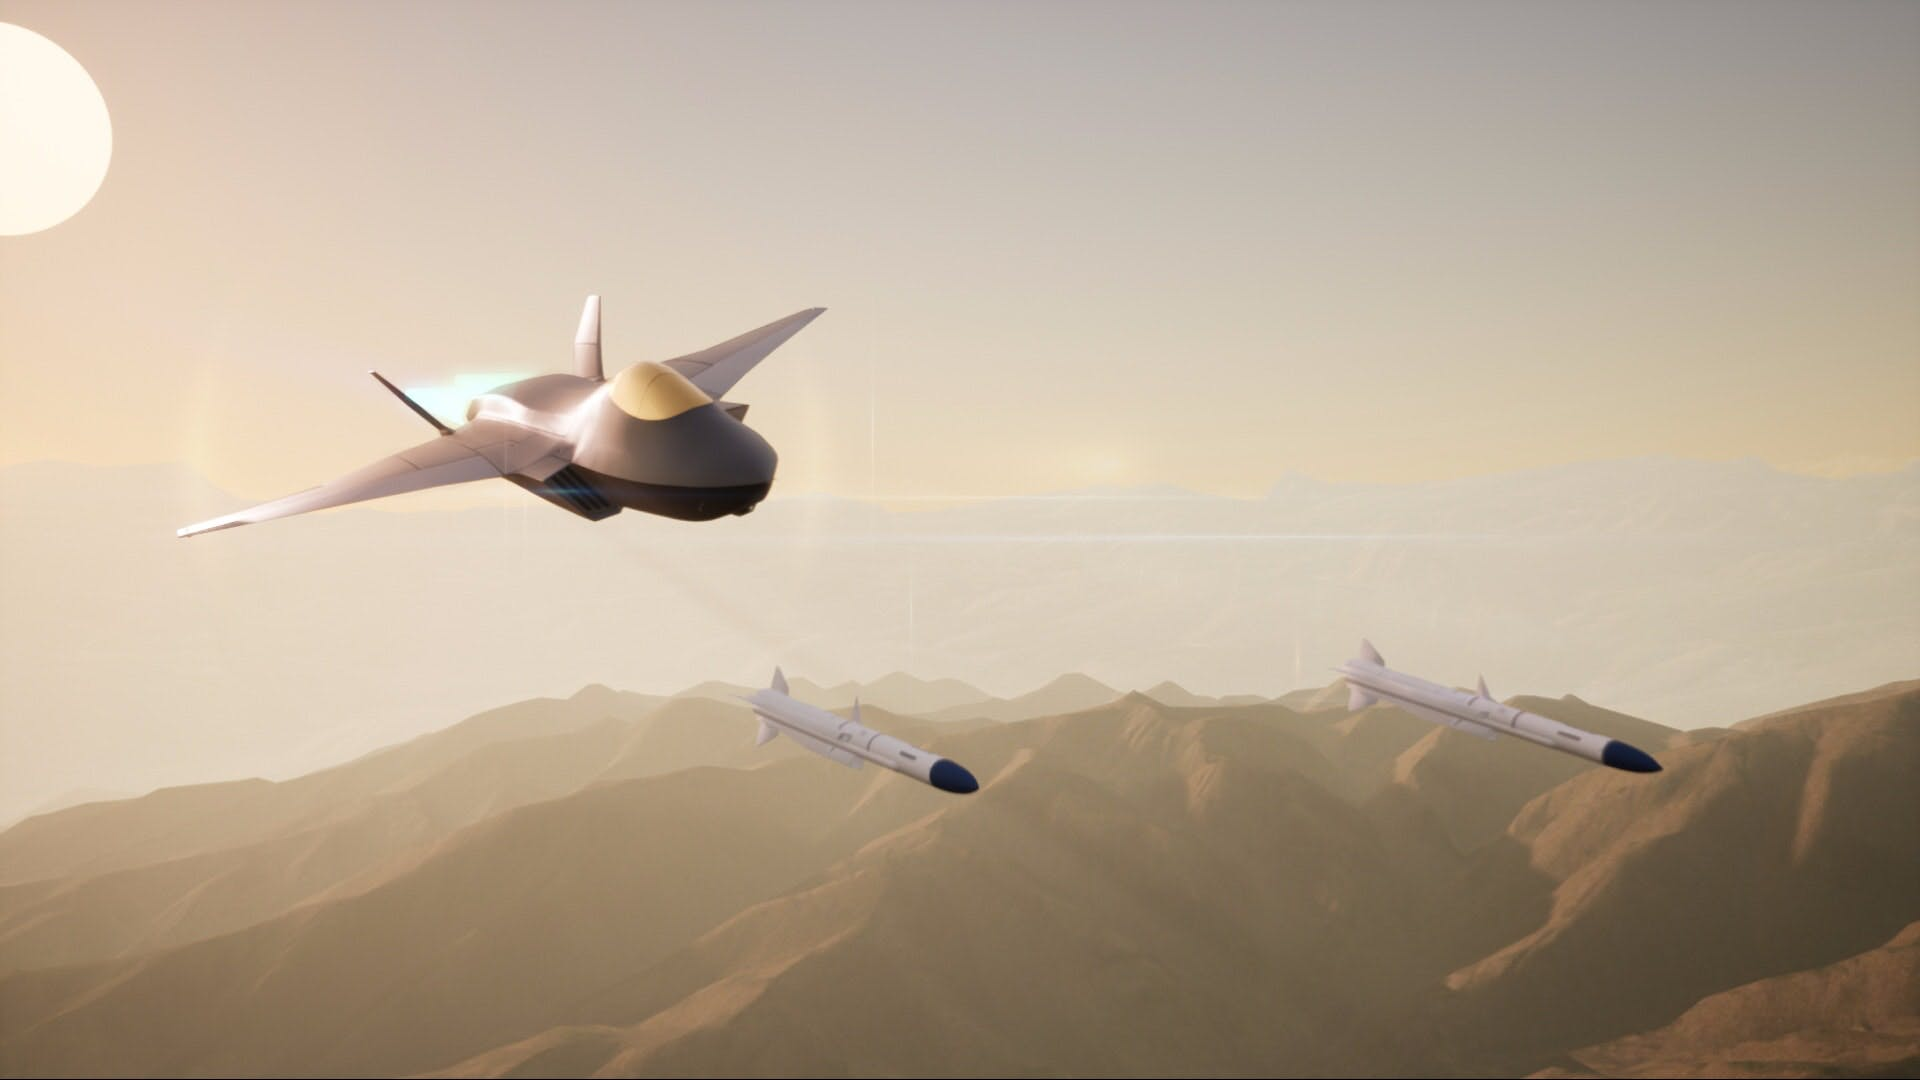 Tempest - A look at what Britain's next generation combat jet could be